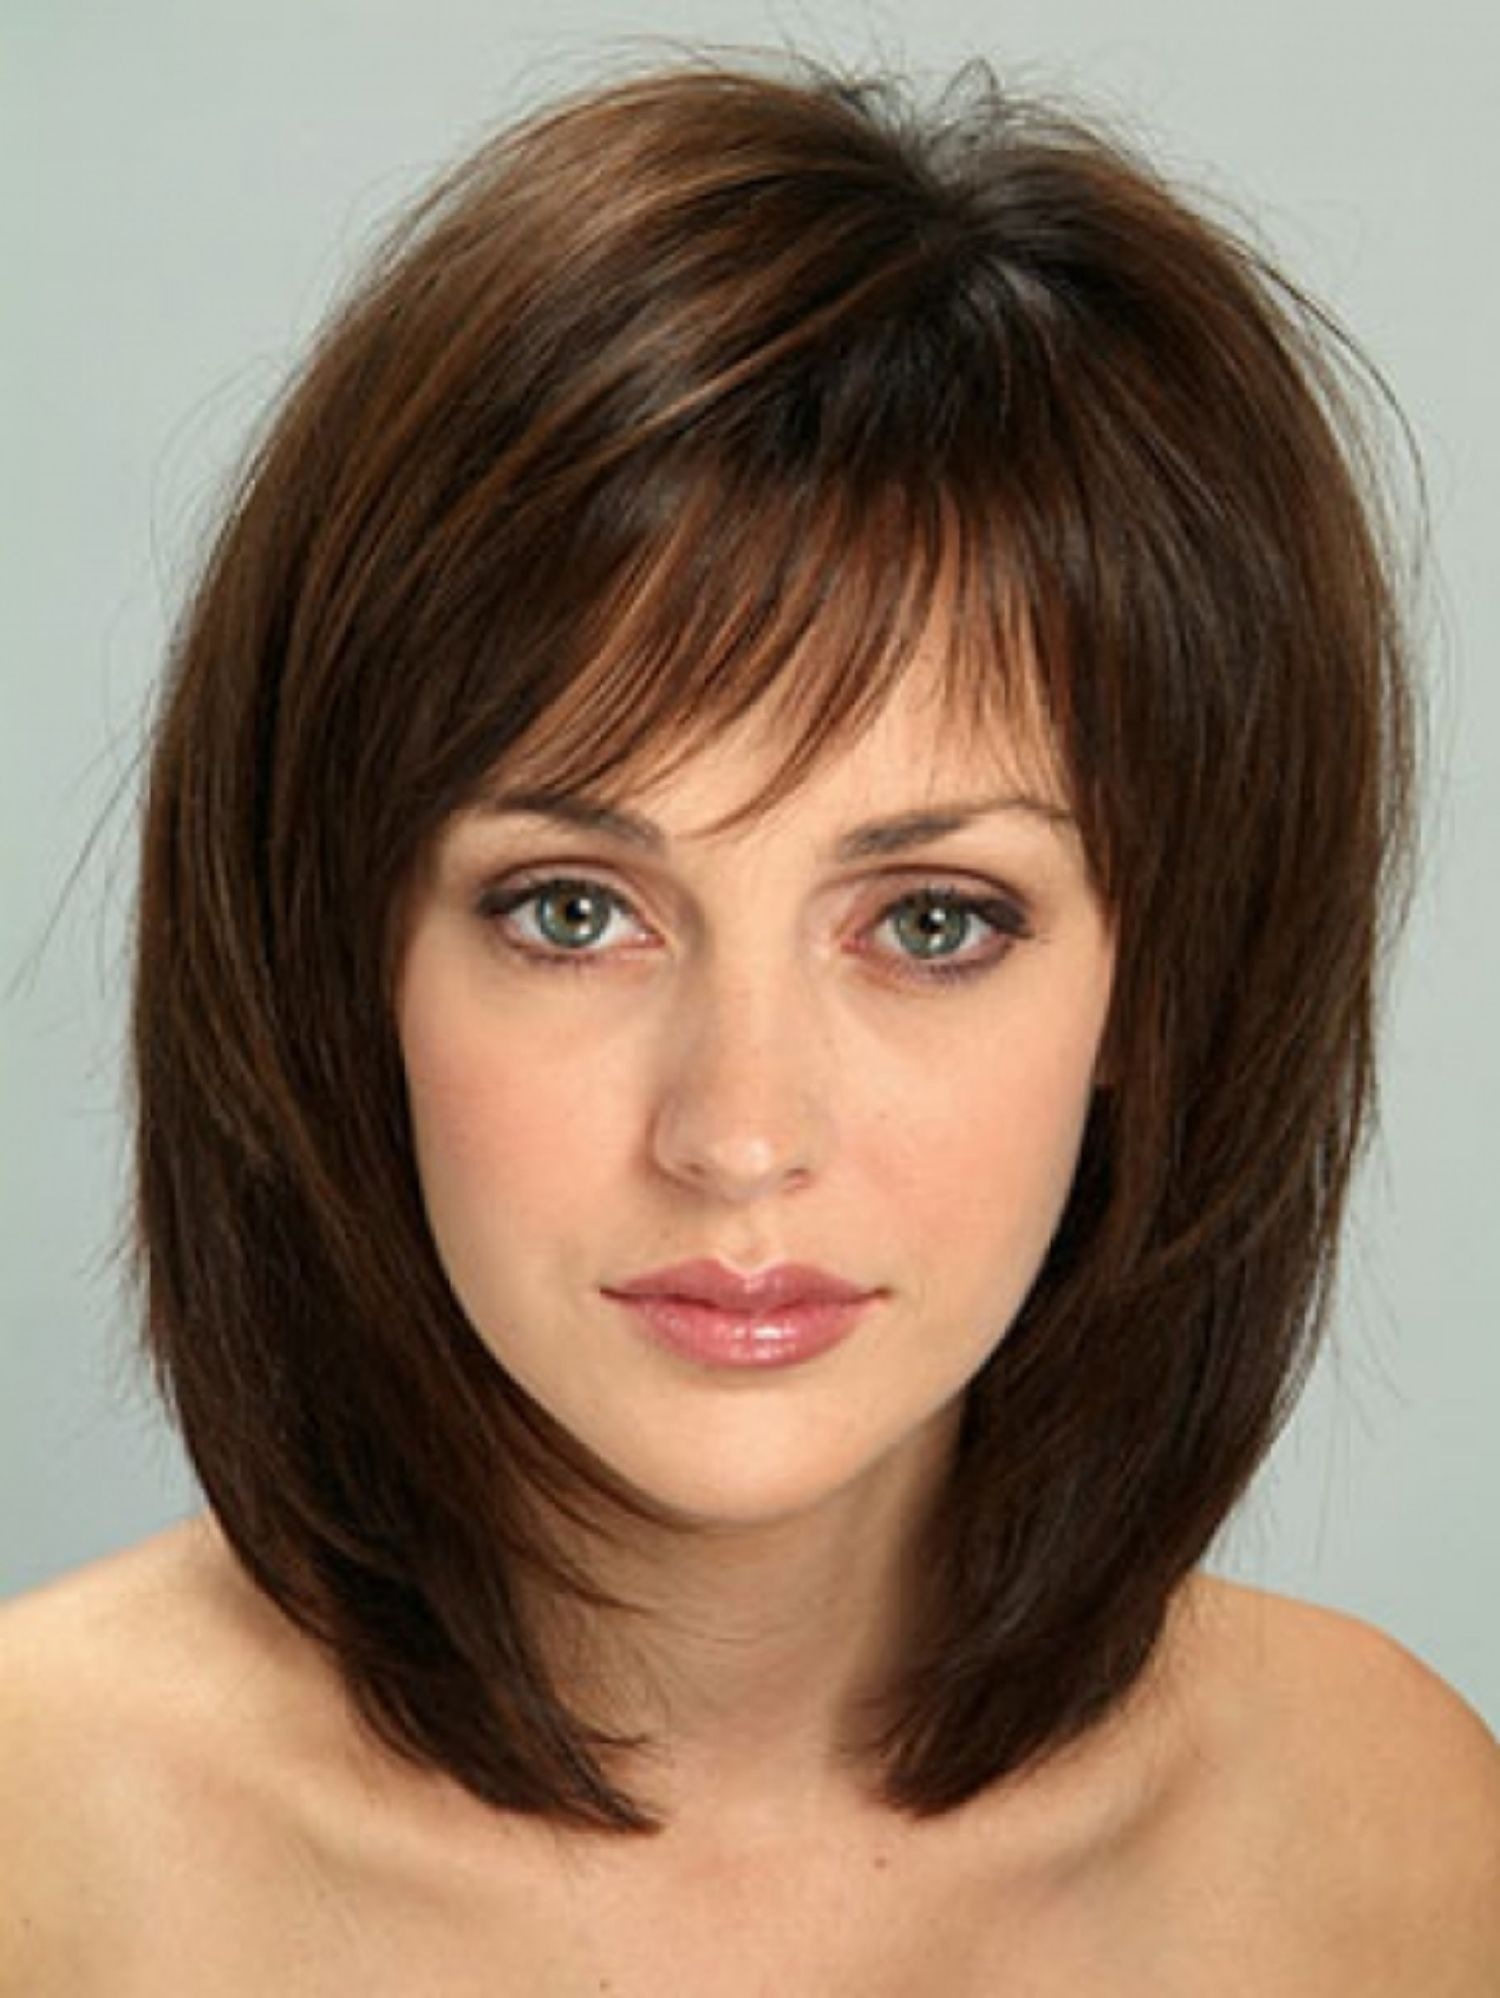 70 Brightest Medium Layered Haircuts to Light You Up in 2020 | Medium hair styles for women ...